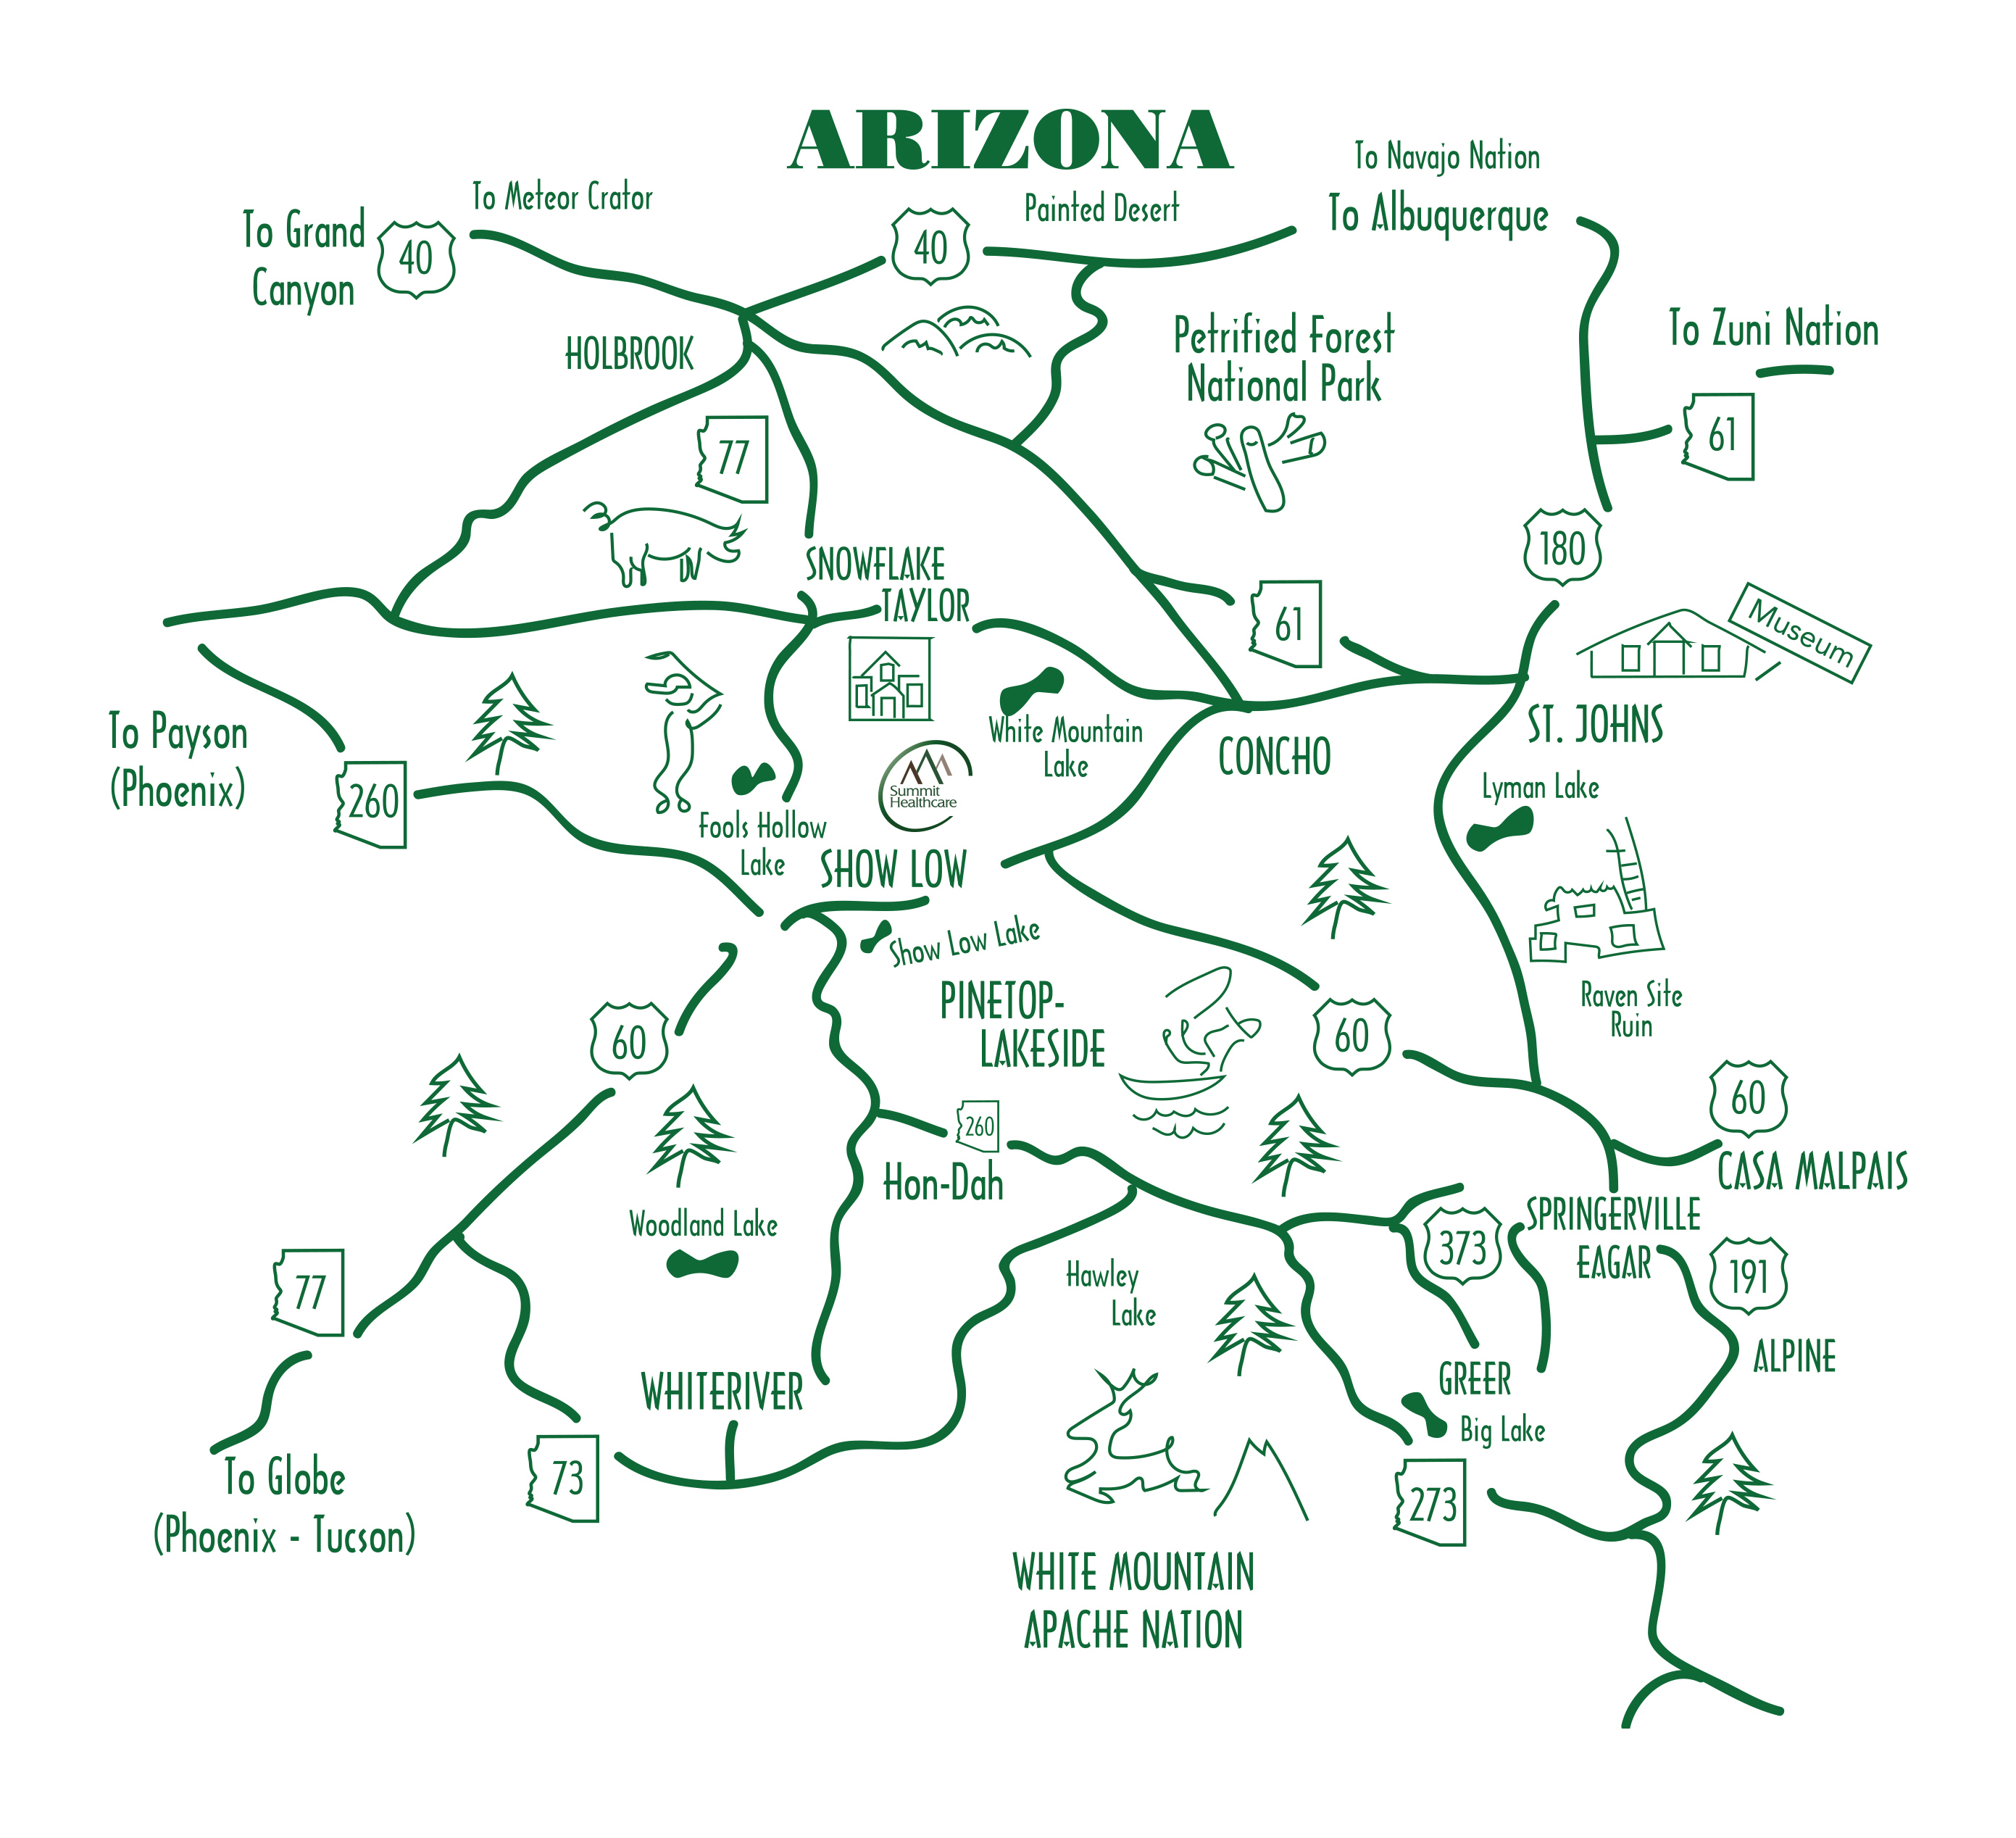 Show Map Of Arizona Getting to Arizona's White Mountains   Arizona White Mountains